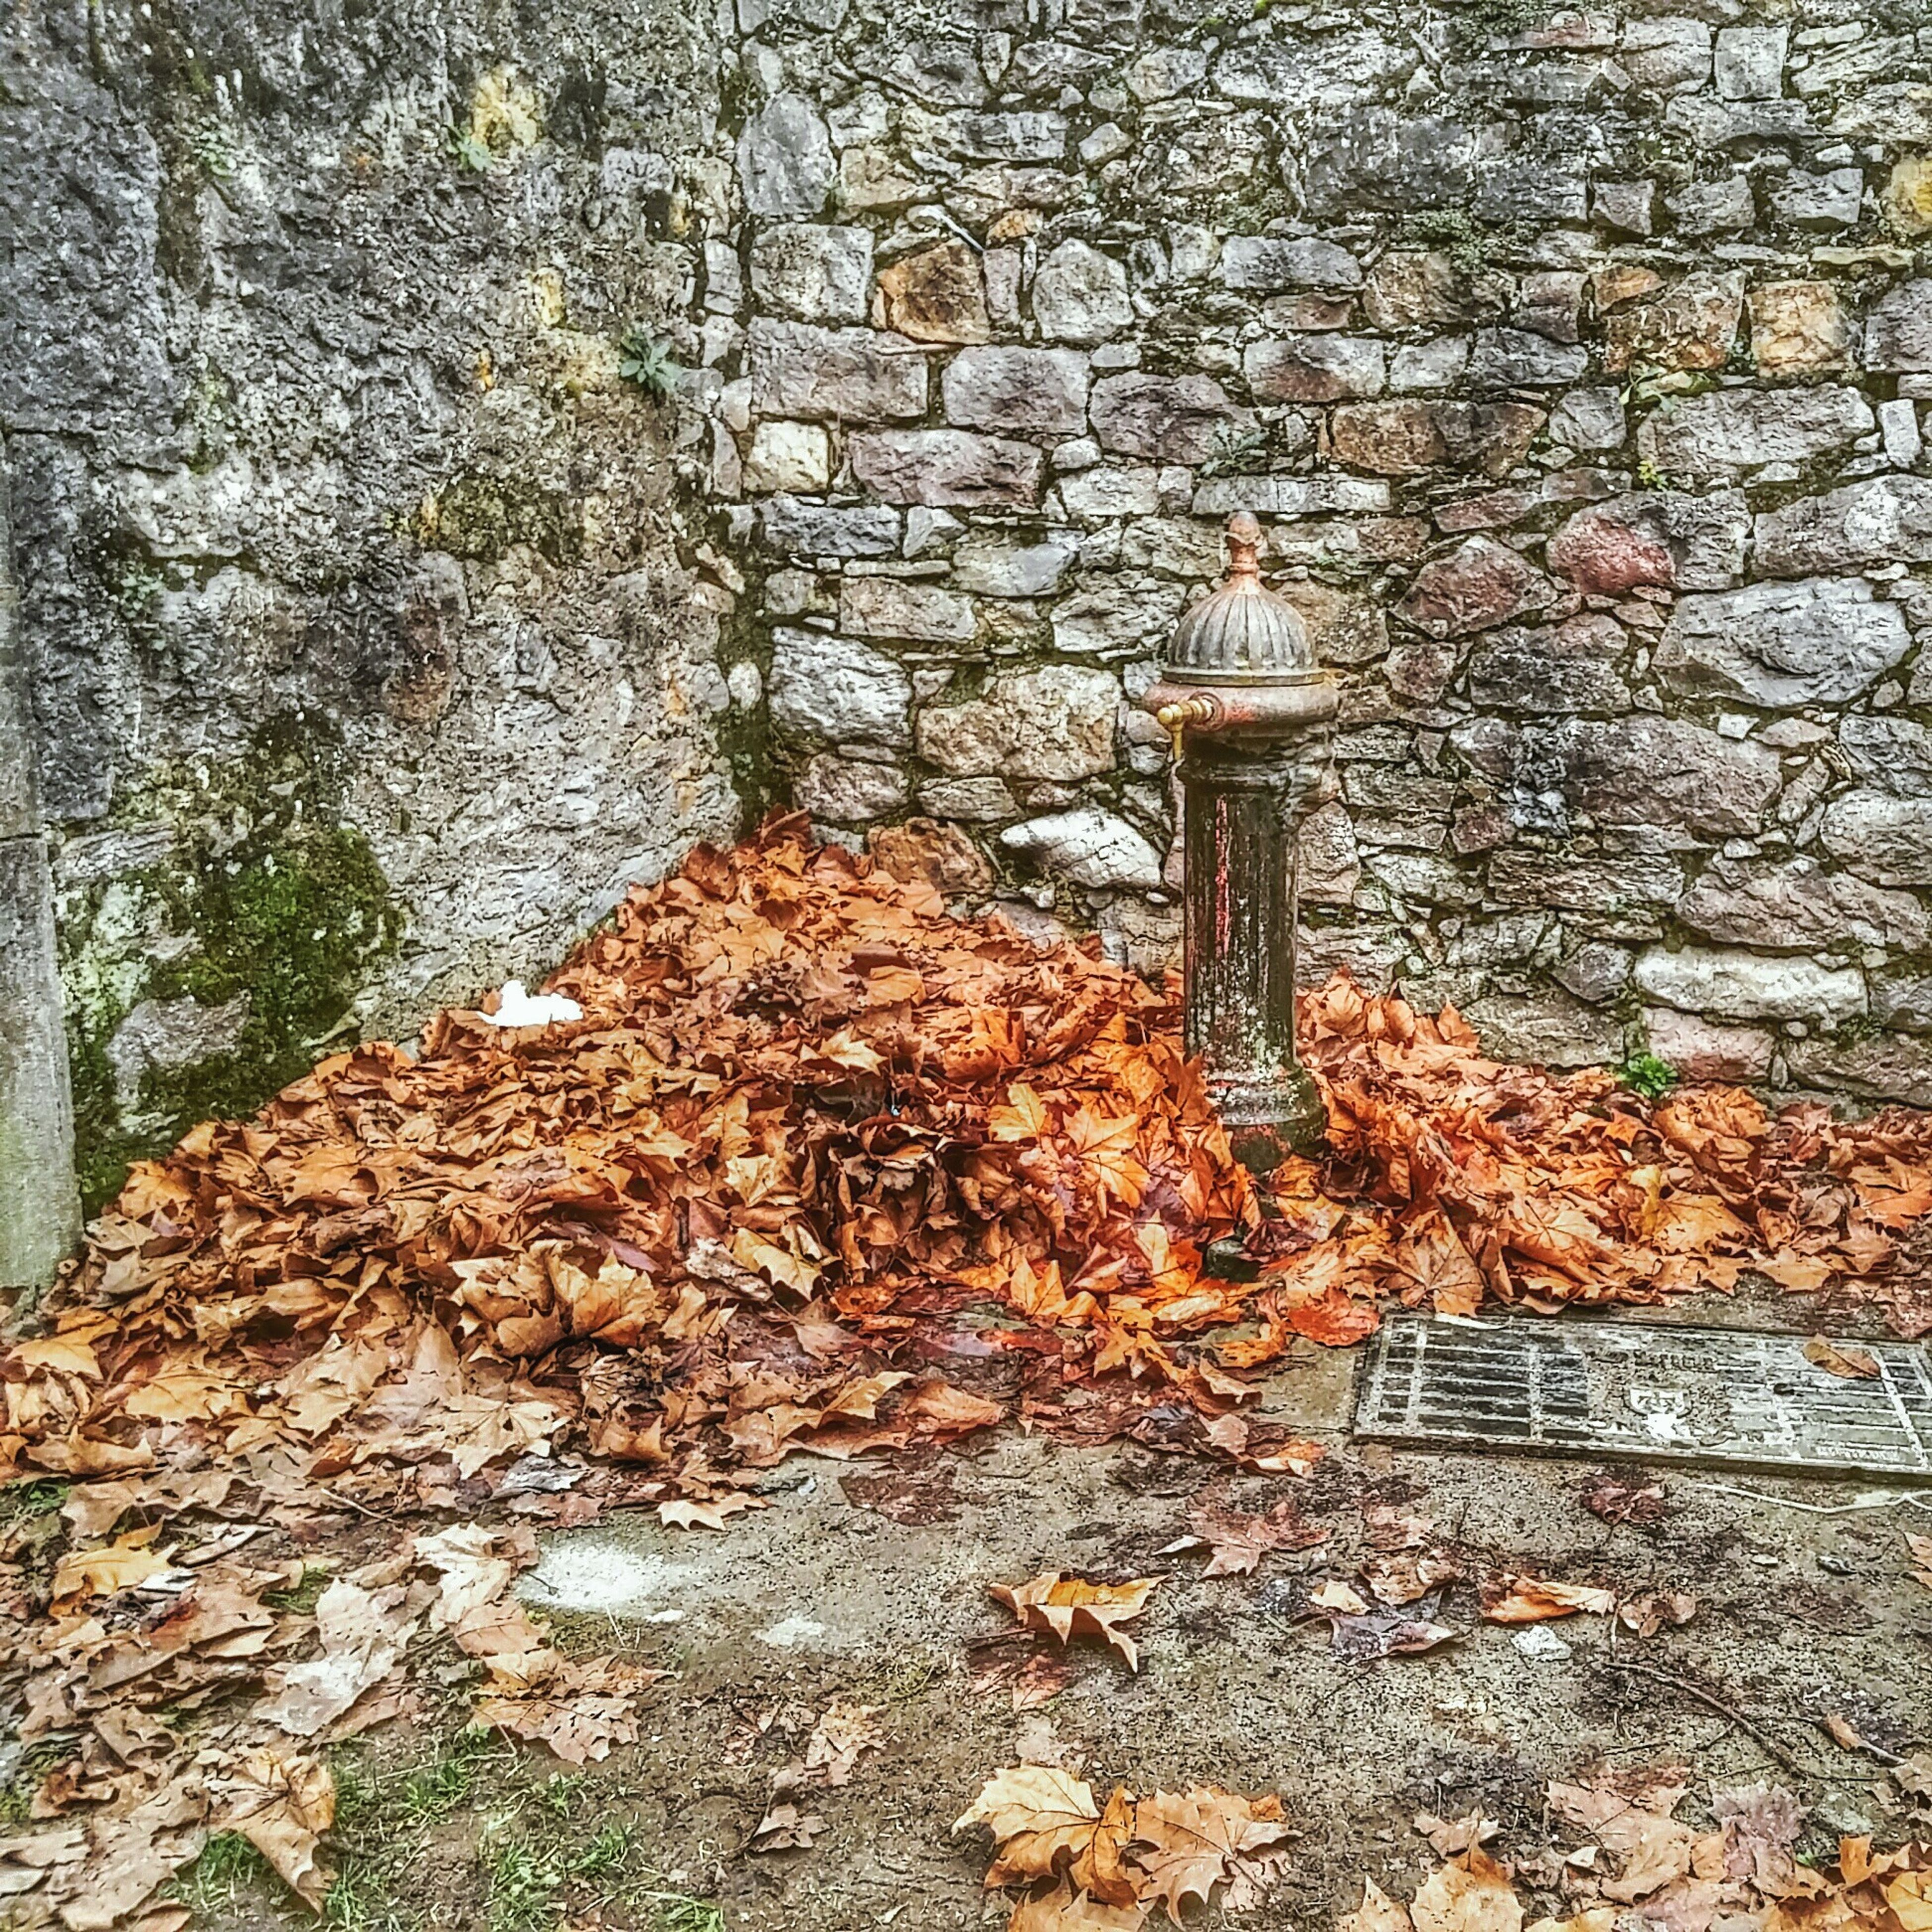 autumn, leaf, dry, change, fallen, season, leaves, nature, day, tranquility, falling, outdoors, high angle view, plant, no people, tree, wood - material, growth, forest, tree trunk